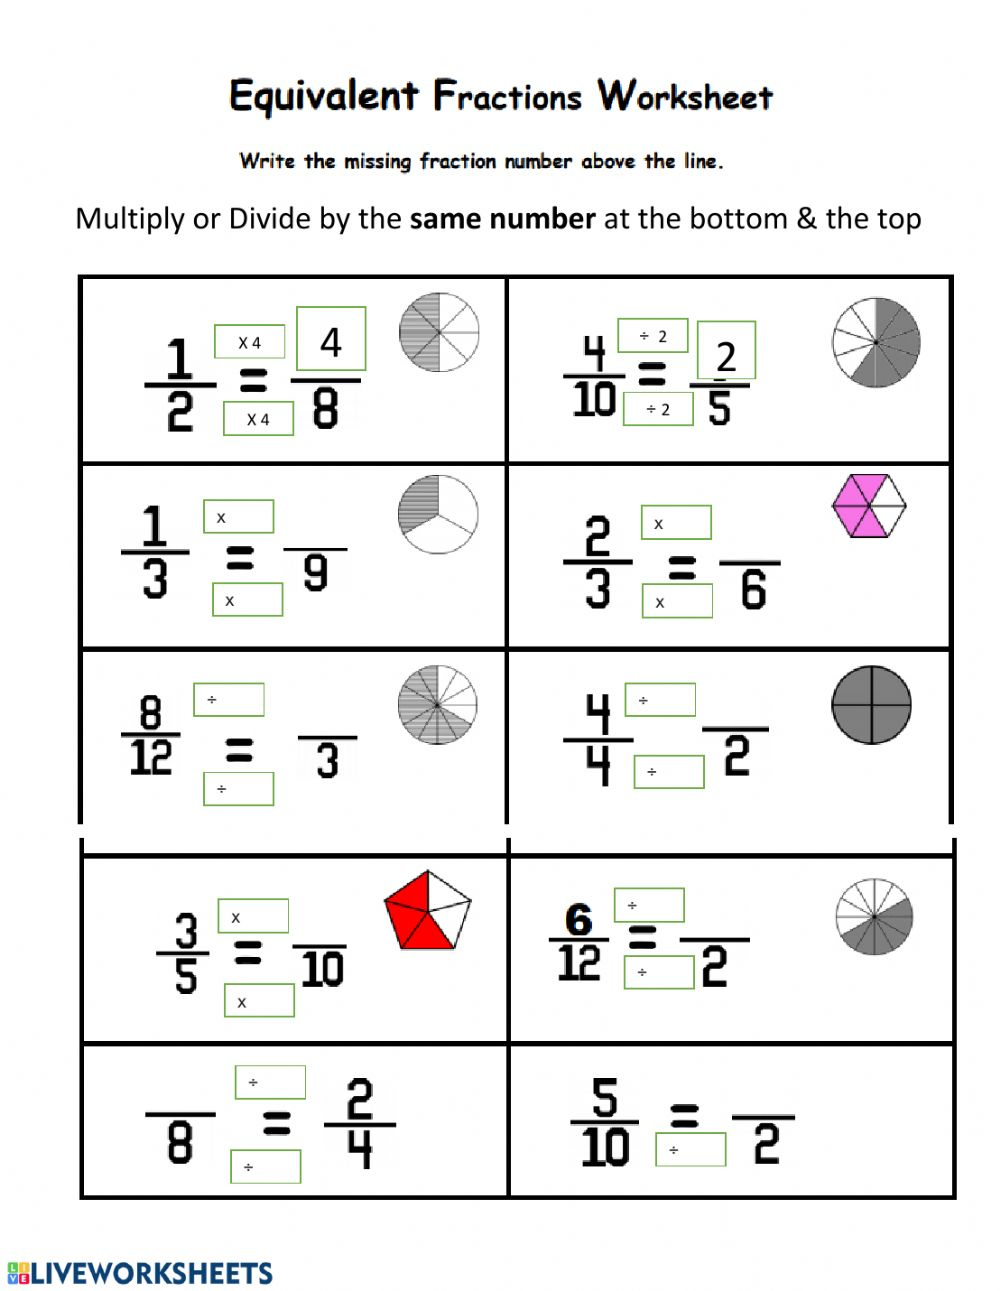 Equivalent Fractions Exercise